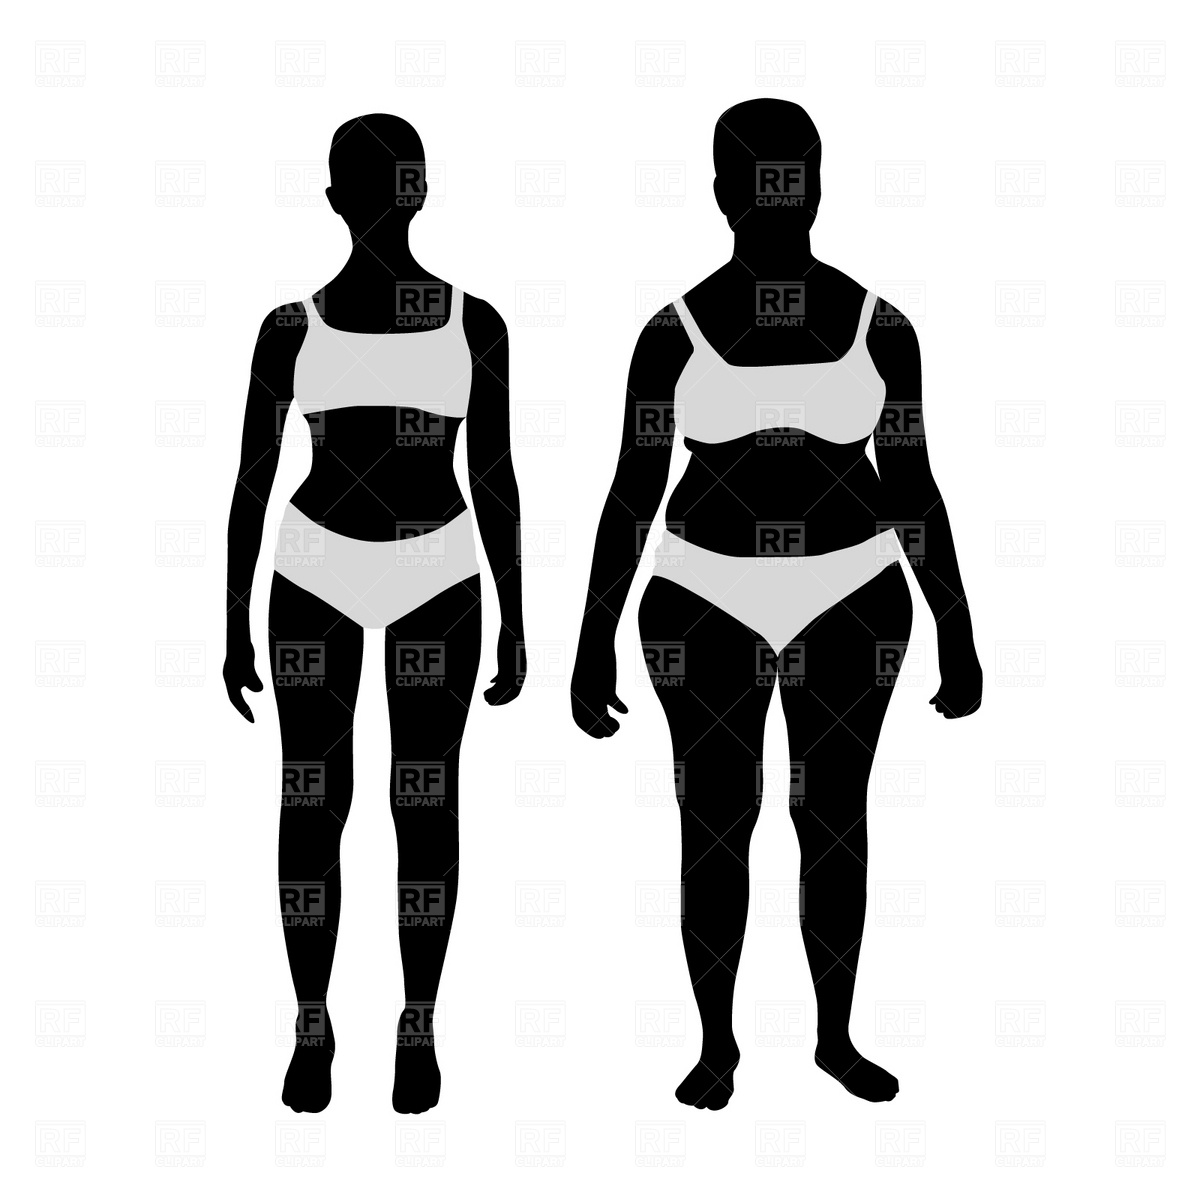 Weightloss results bikini clipart banner royalty free library Lose Weight Cliparts | Free download best Lose Weight ... banner royalty free library